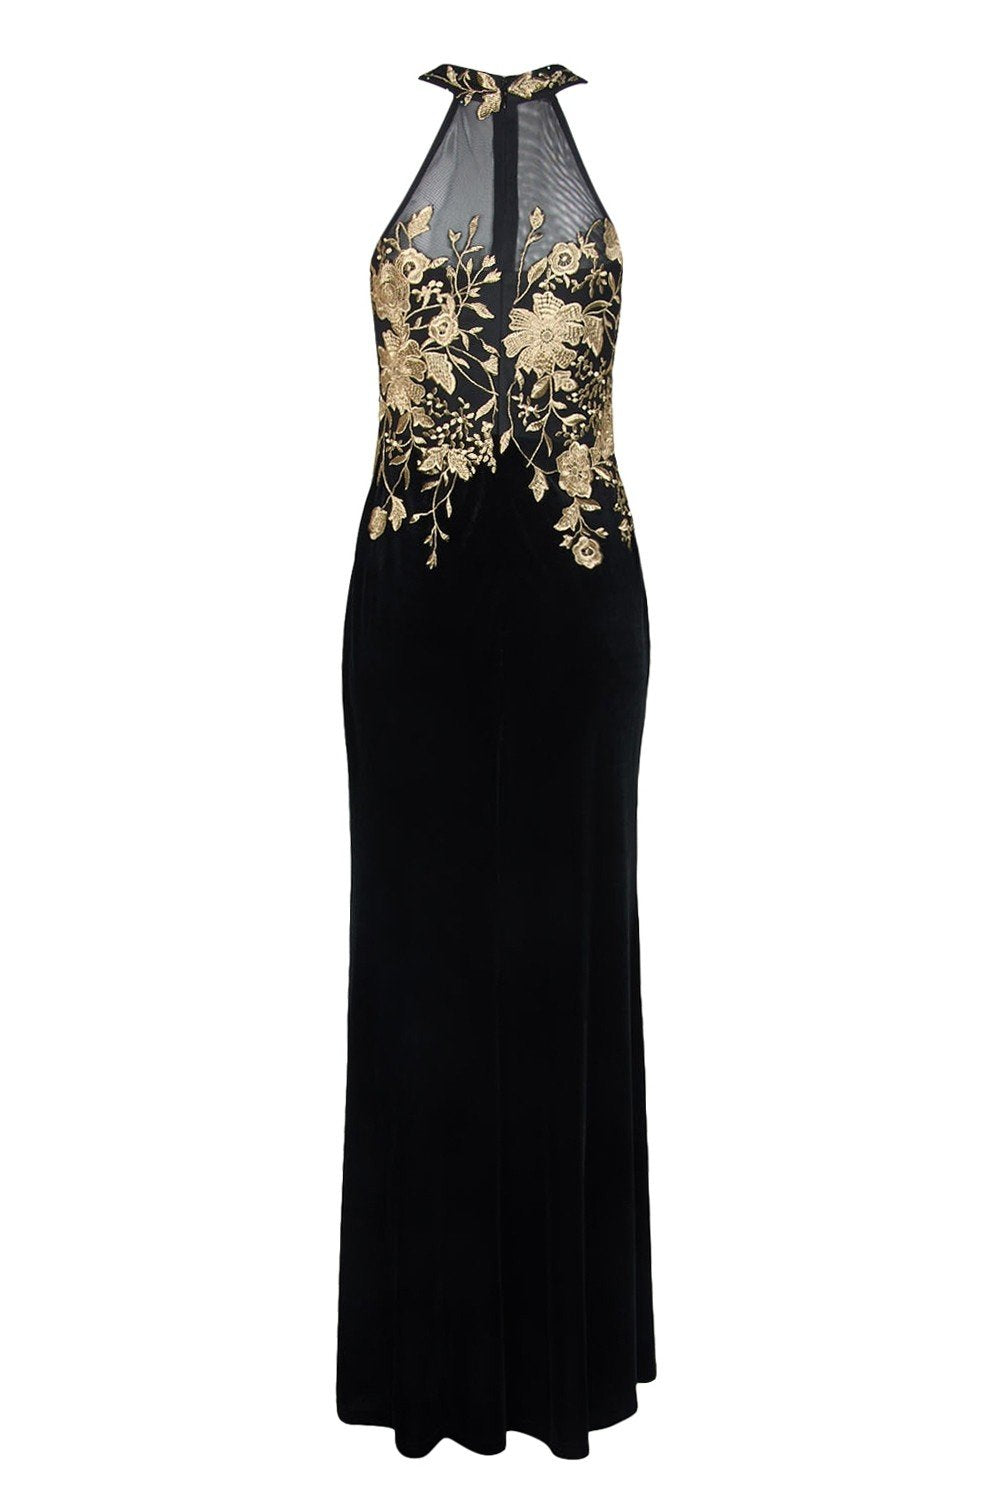 Cachet - 59820 Gilt Floral Embroidered Illusion Halter Gown In Black and Gold